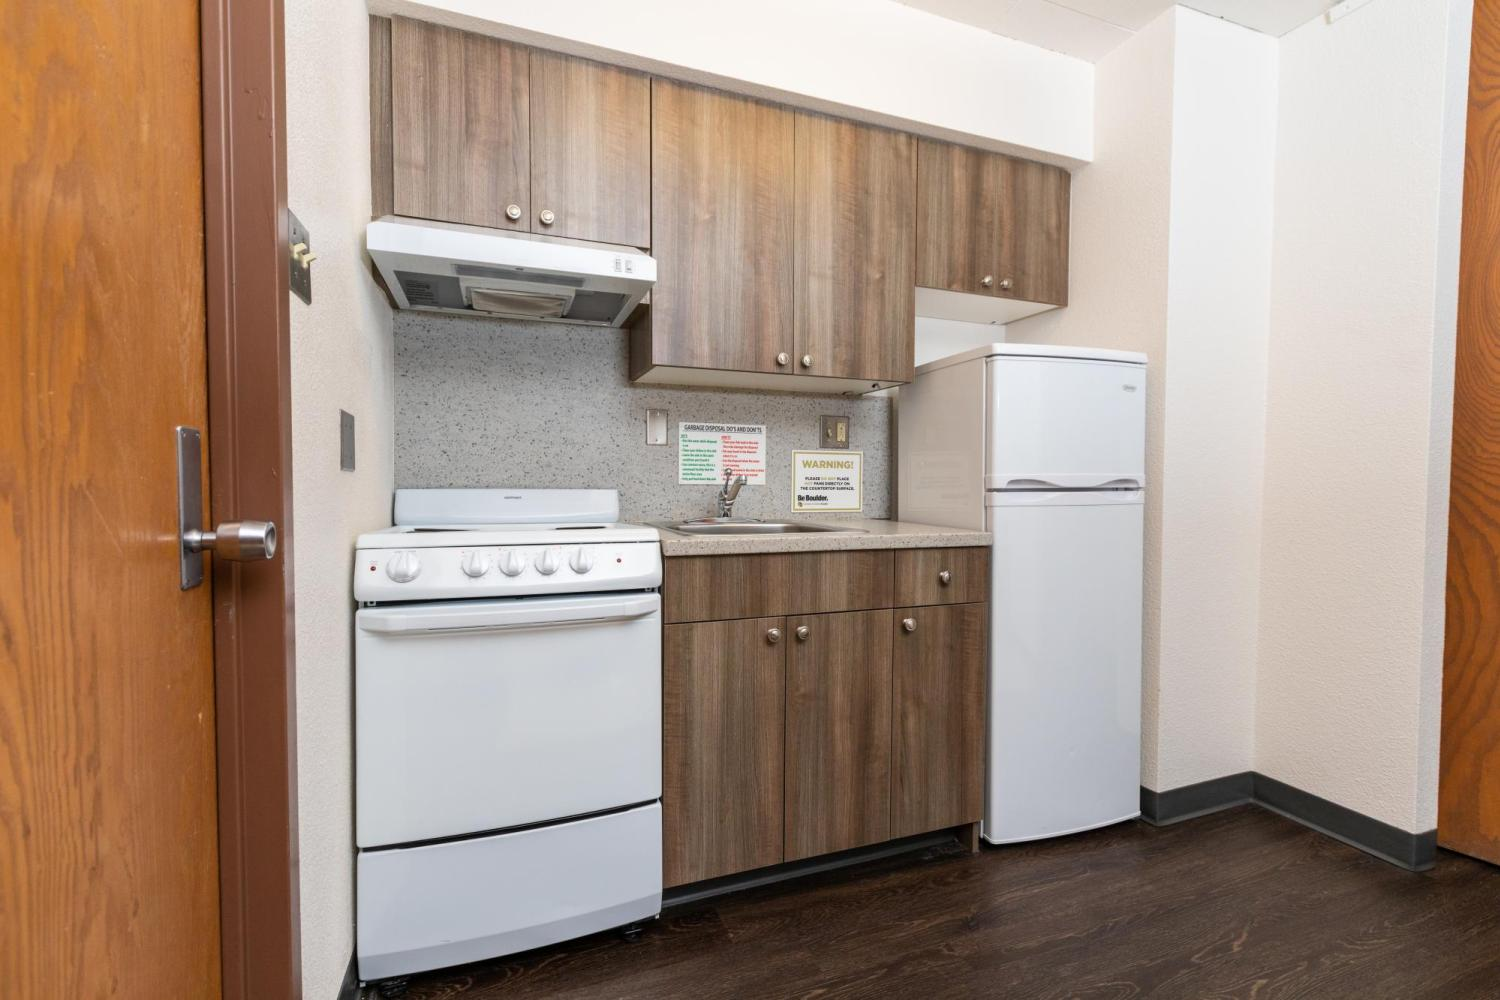 Remodeled kitchen with oven, sink, refrigerator, and freezer (Stearns West)